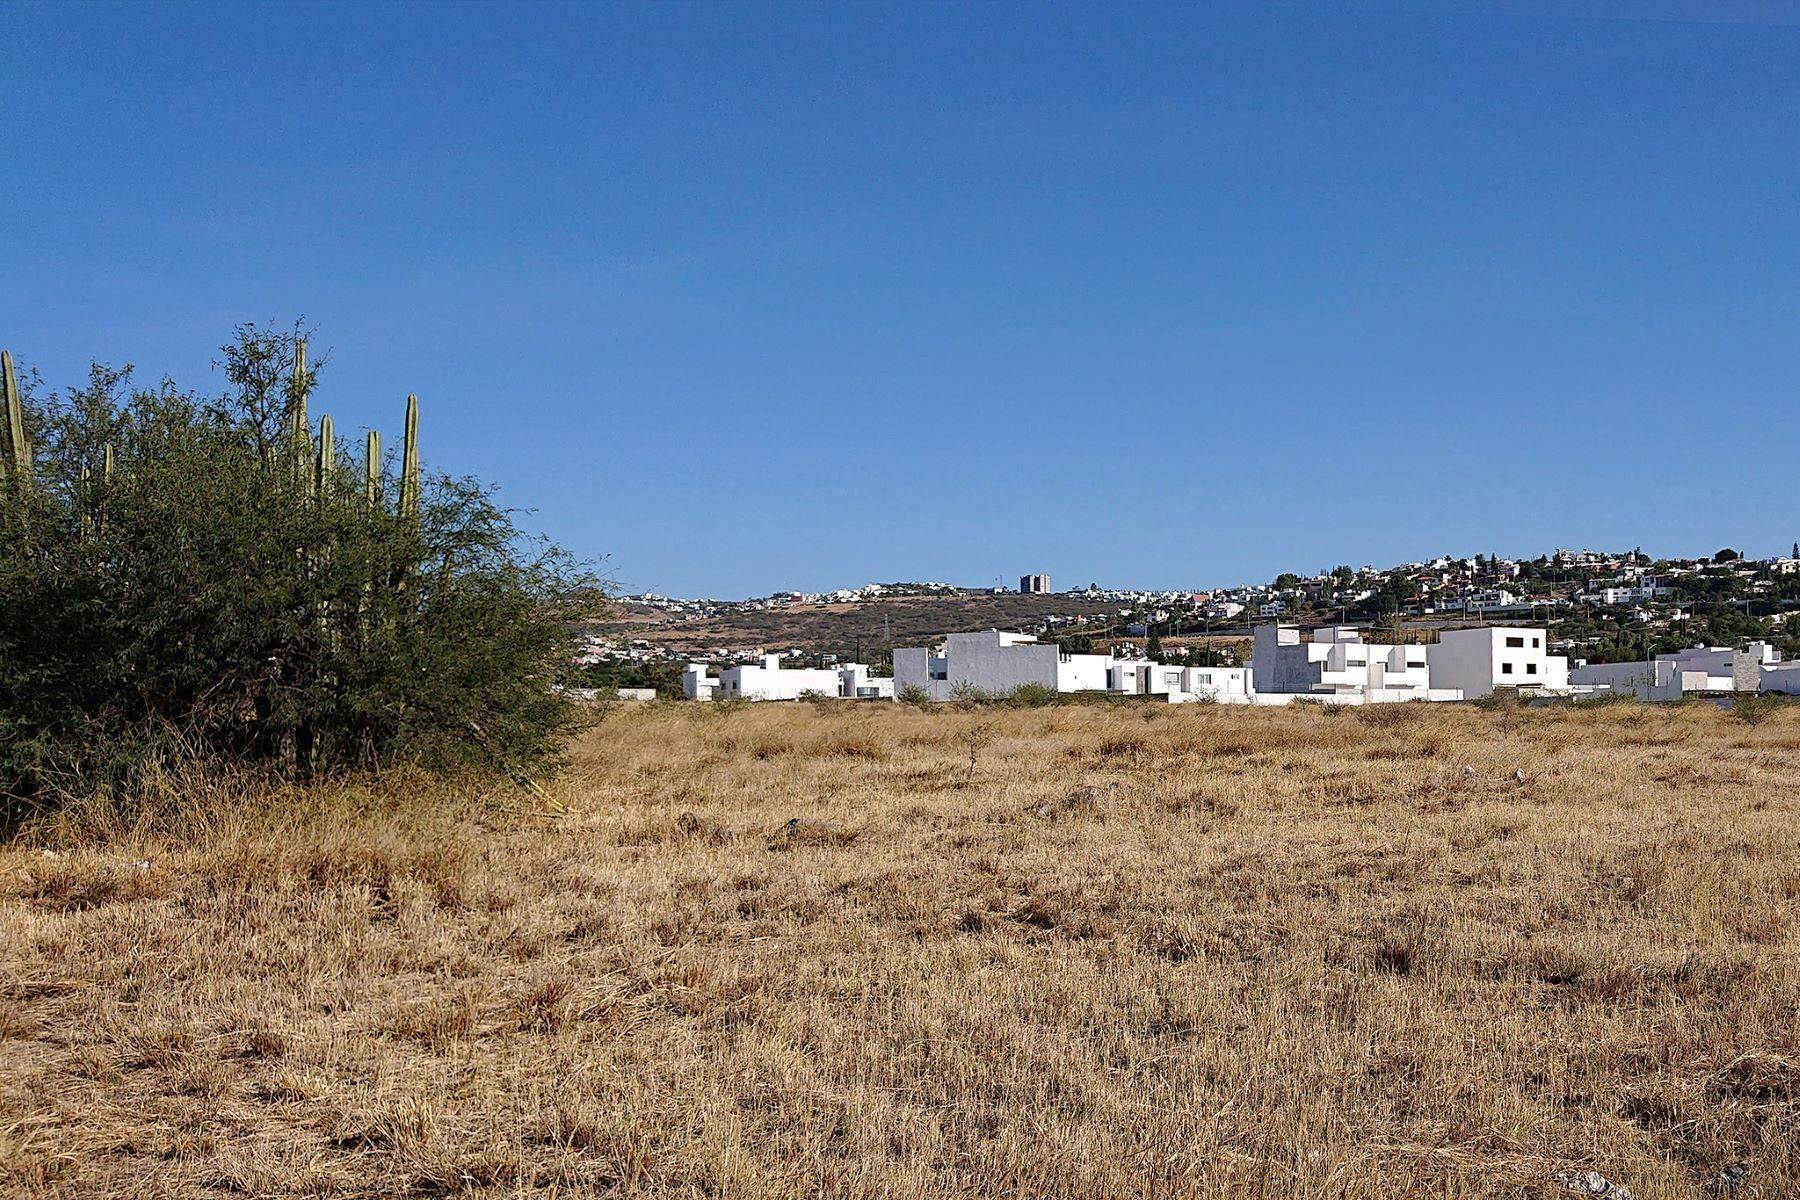 Land for Sale at Terreno Ámsterdam I Queretaro, Queretaro 76904 Mexico